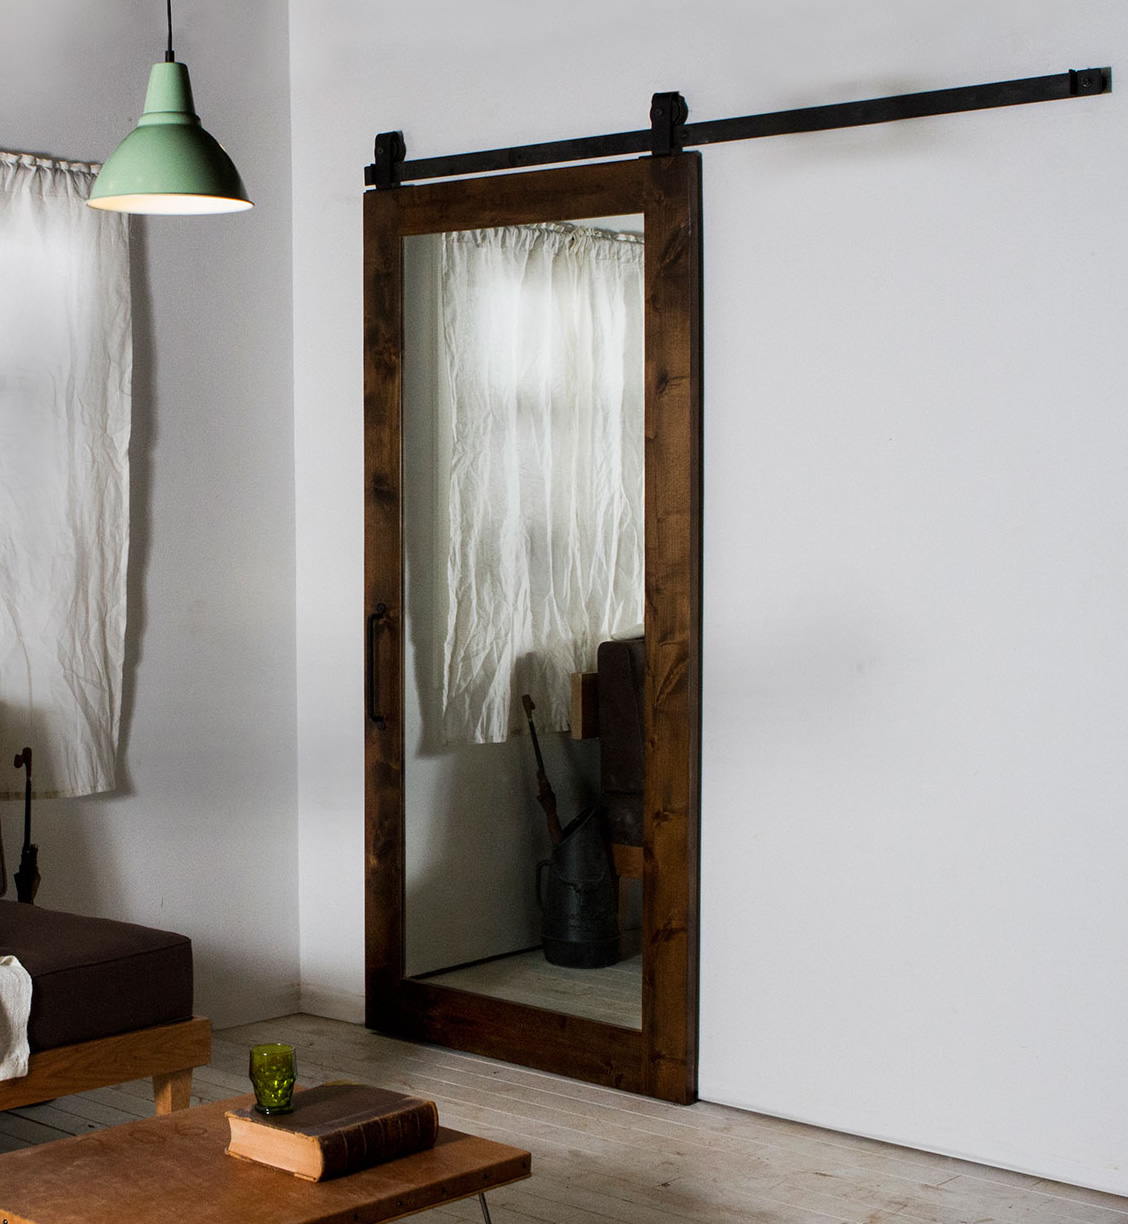 Le Meilleur How To Build And Decorate With Rustic Mirror Frames Ce Mois Ci